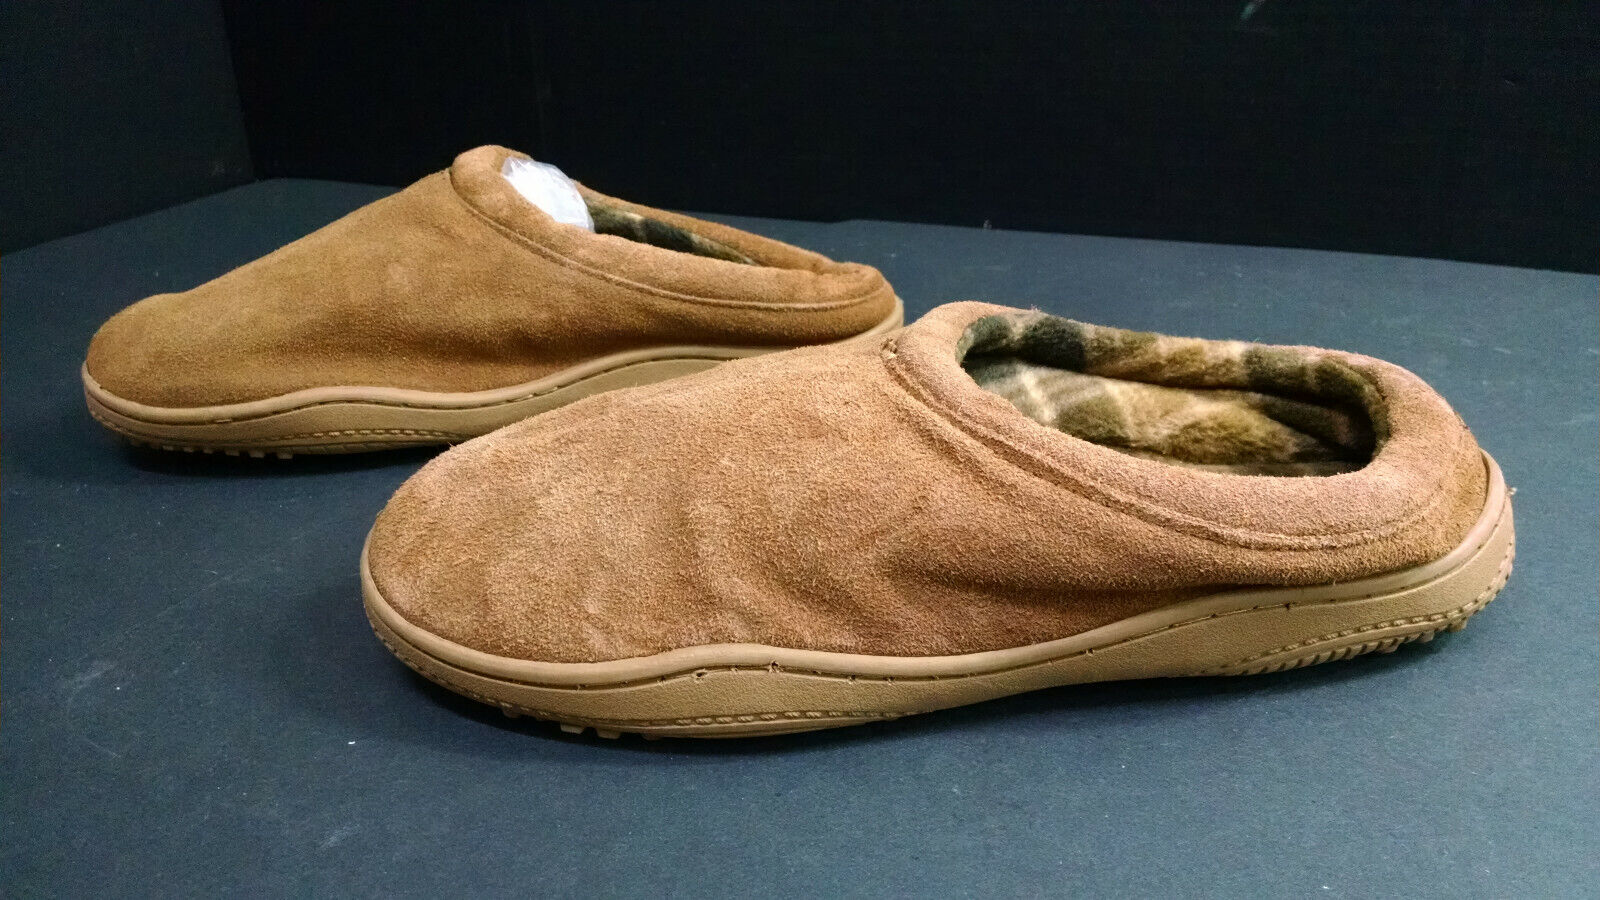 Chaps Men's Comfy House Slippers/Shoes/Slides, Brown, Size 9